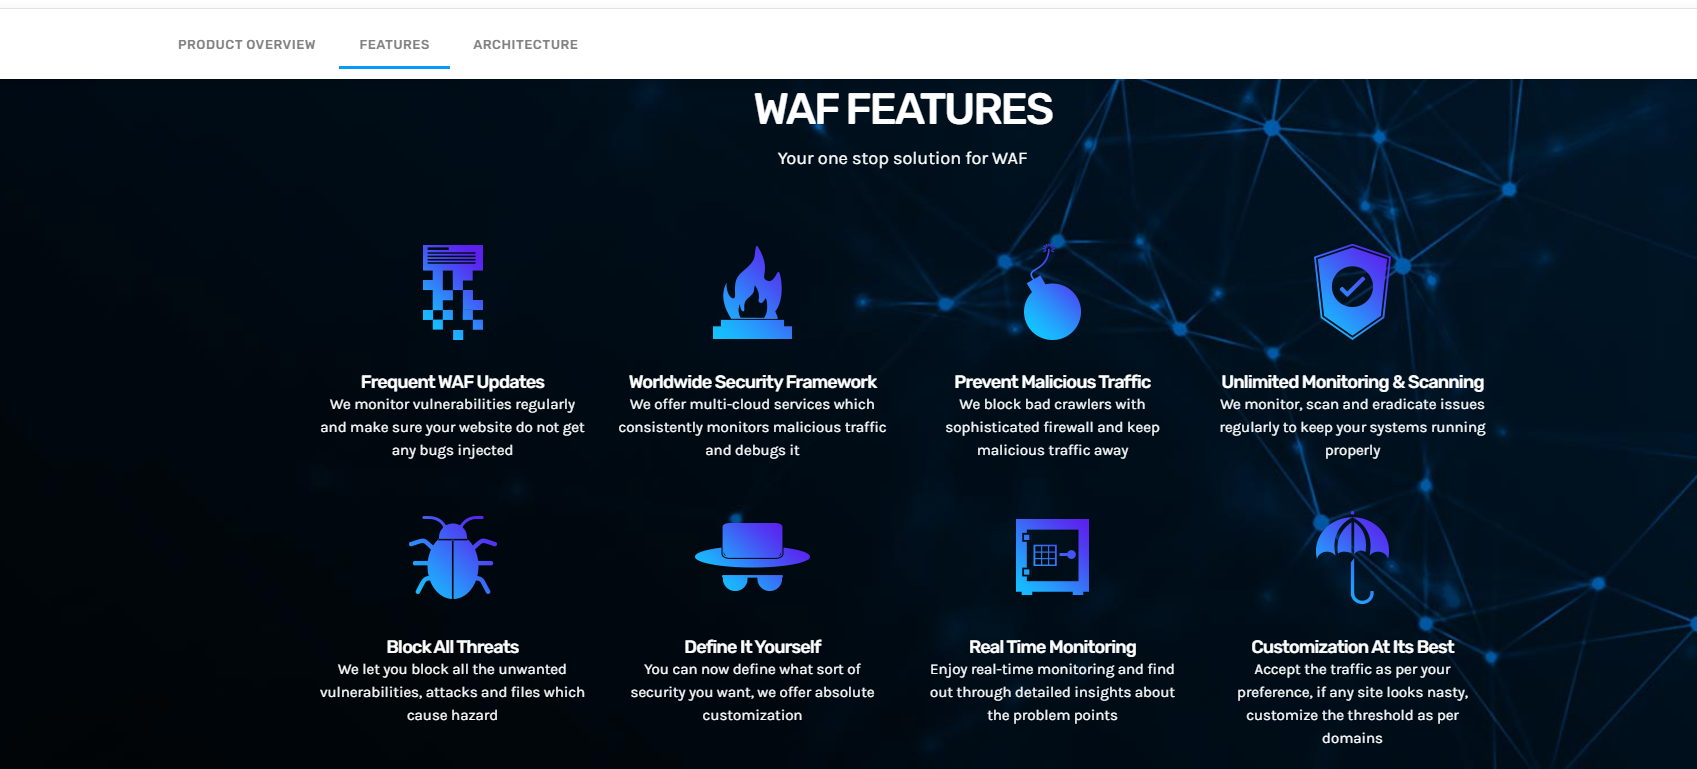 Waf features hack protection